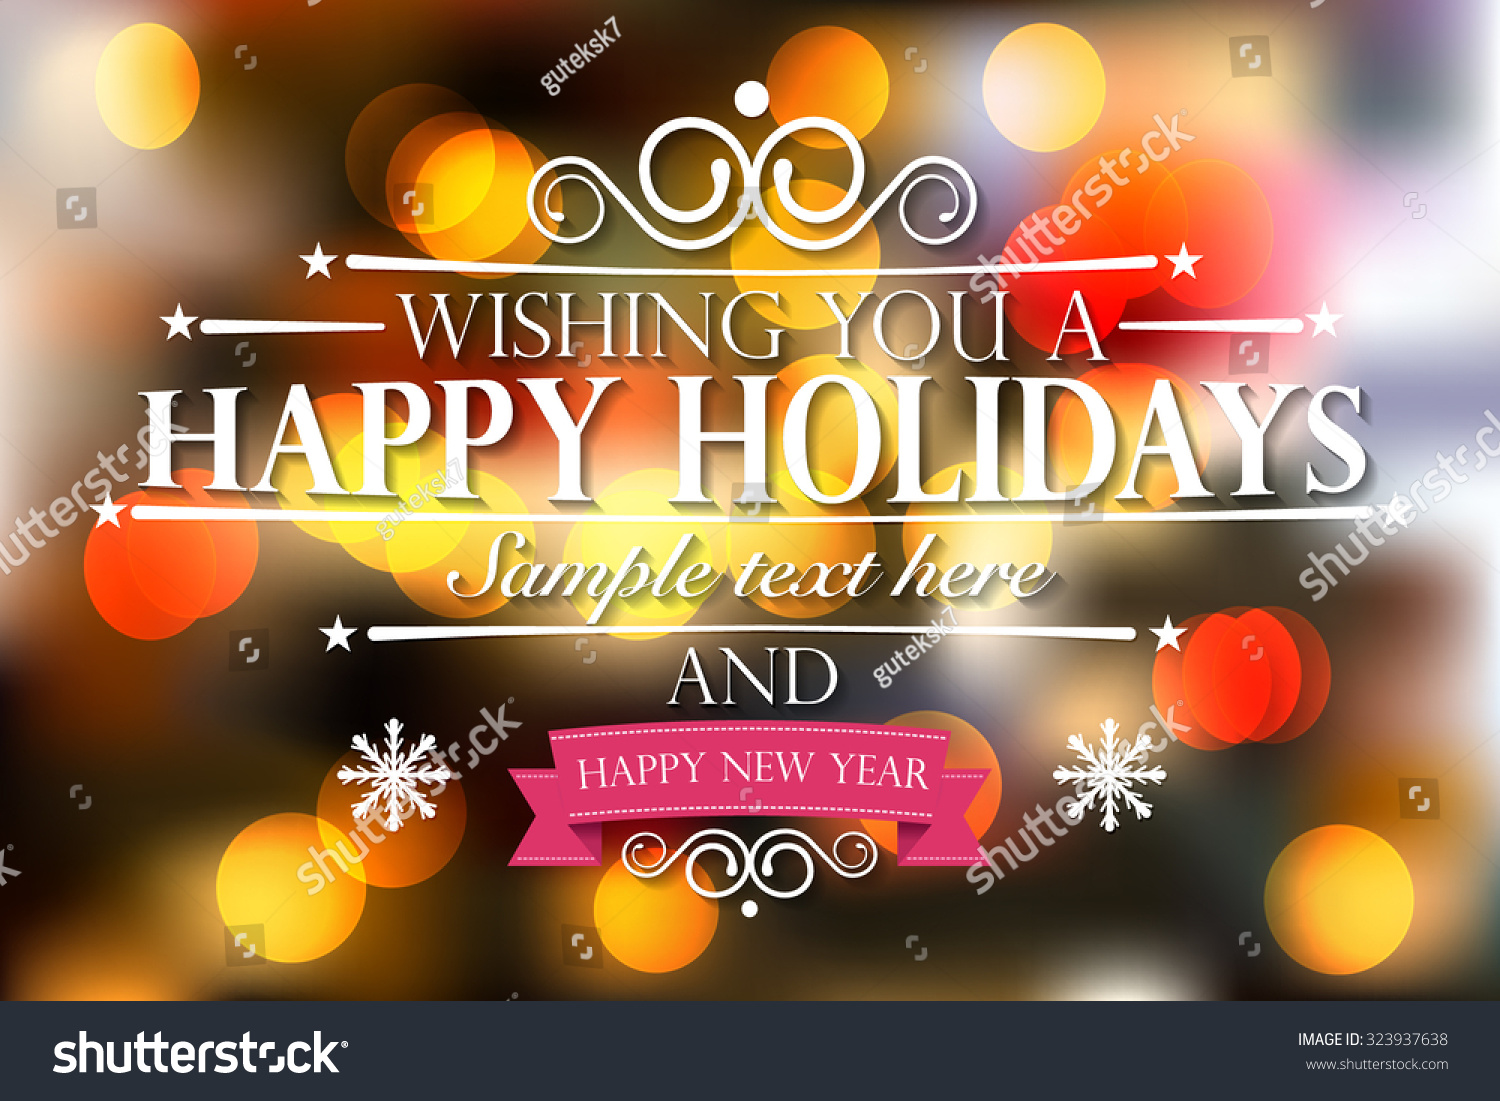 happy holidays and a happy new year wishes card on bokeh background vector illustration eps